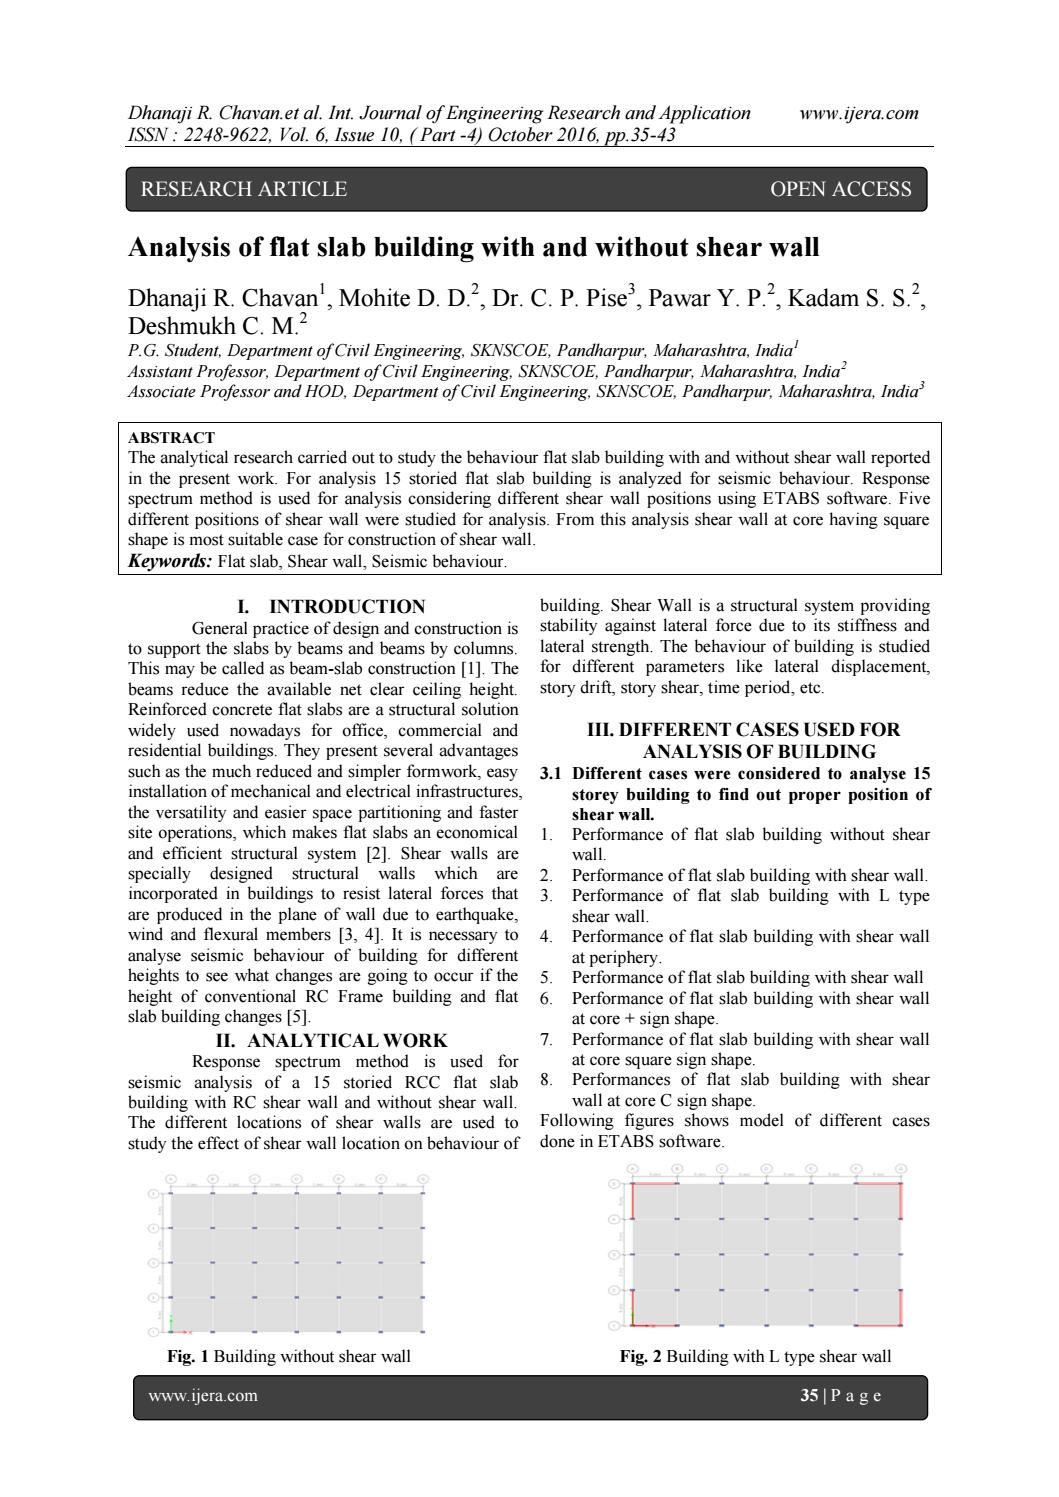 Analysis of flat slab building with and without shear wall